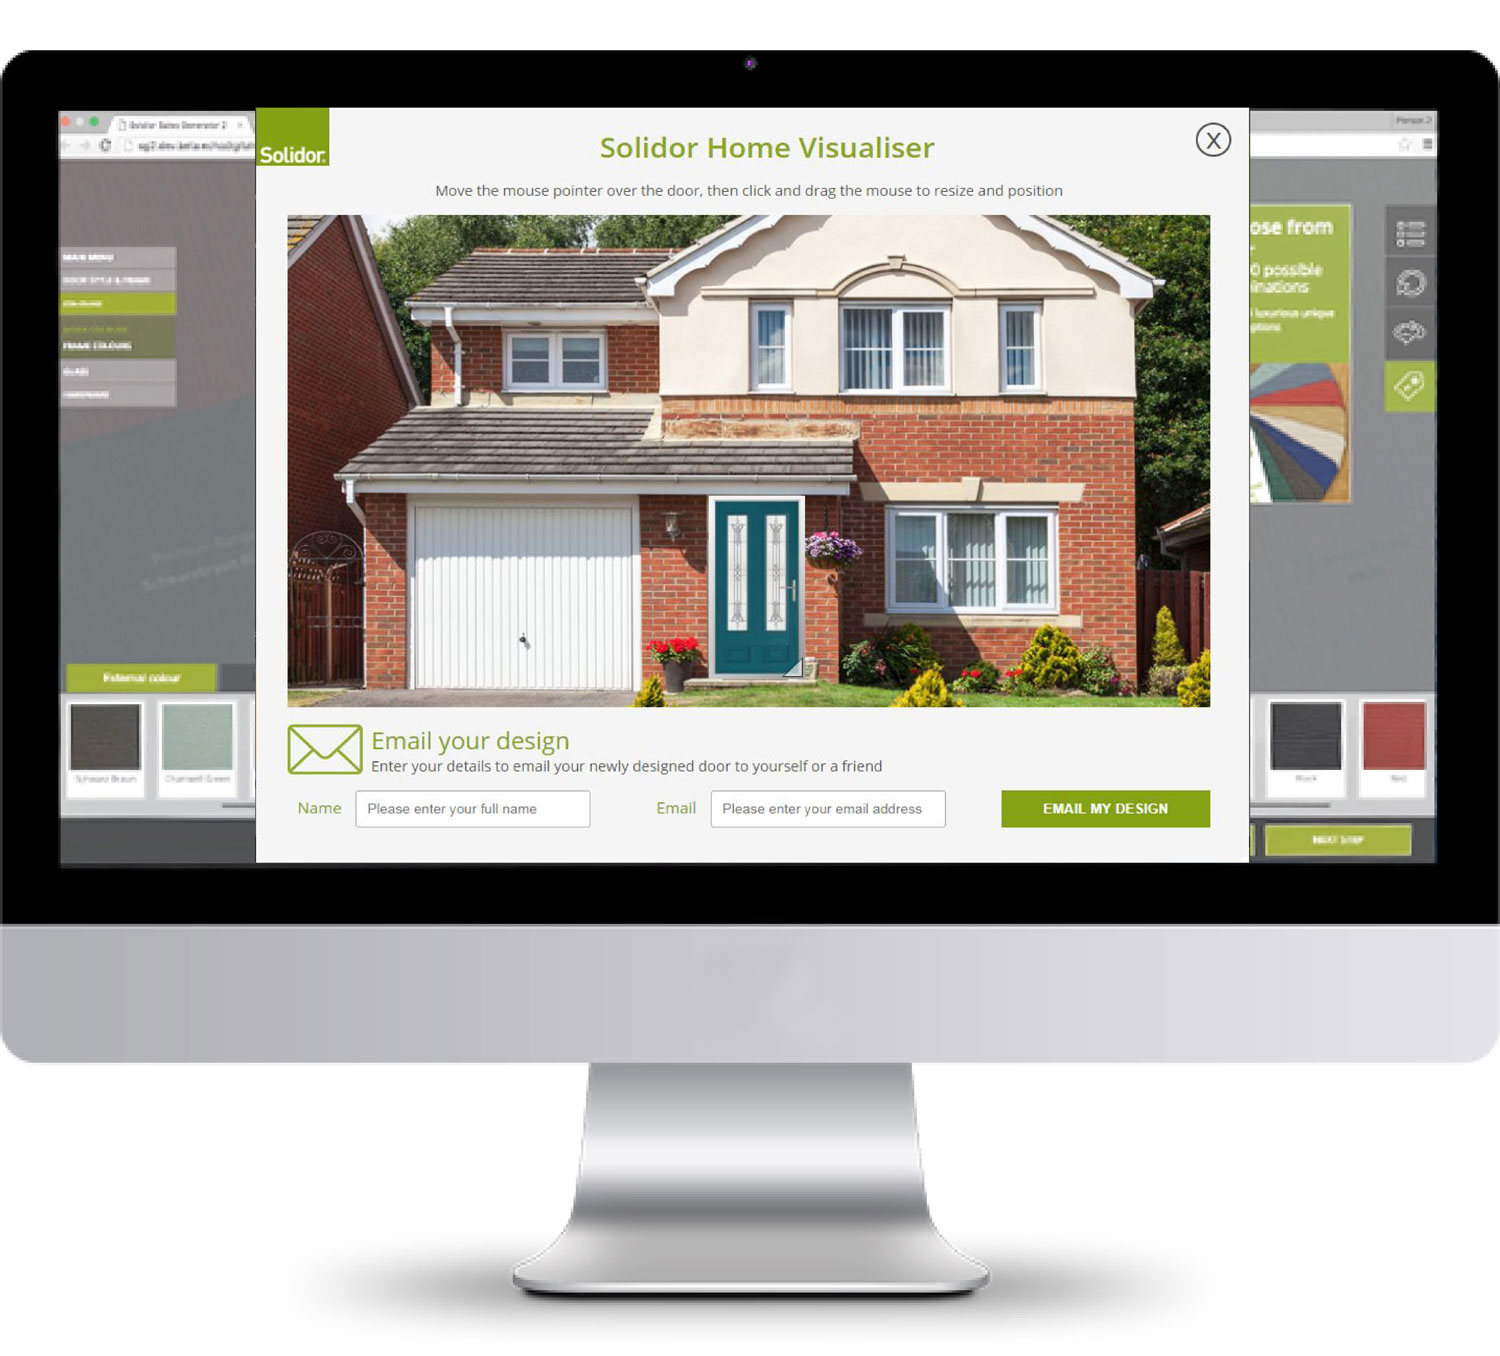 So go on give it a try http www solidor co uk design a door